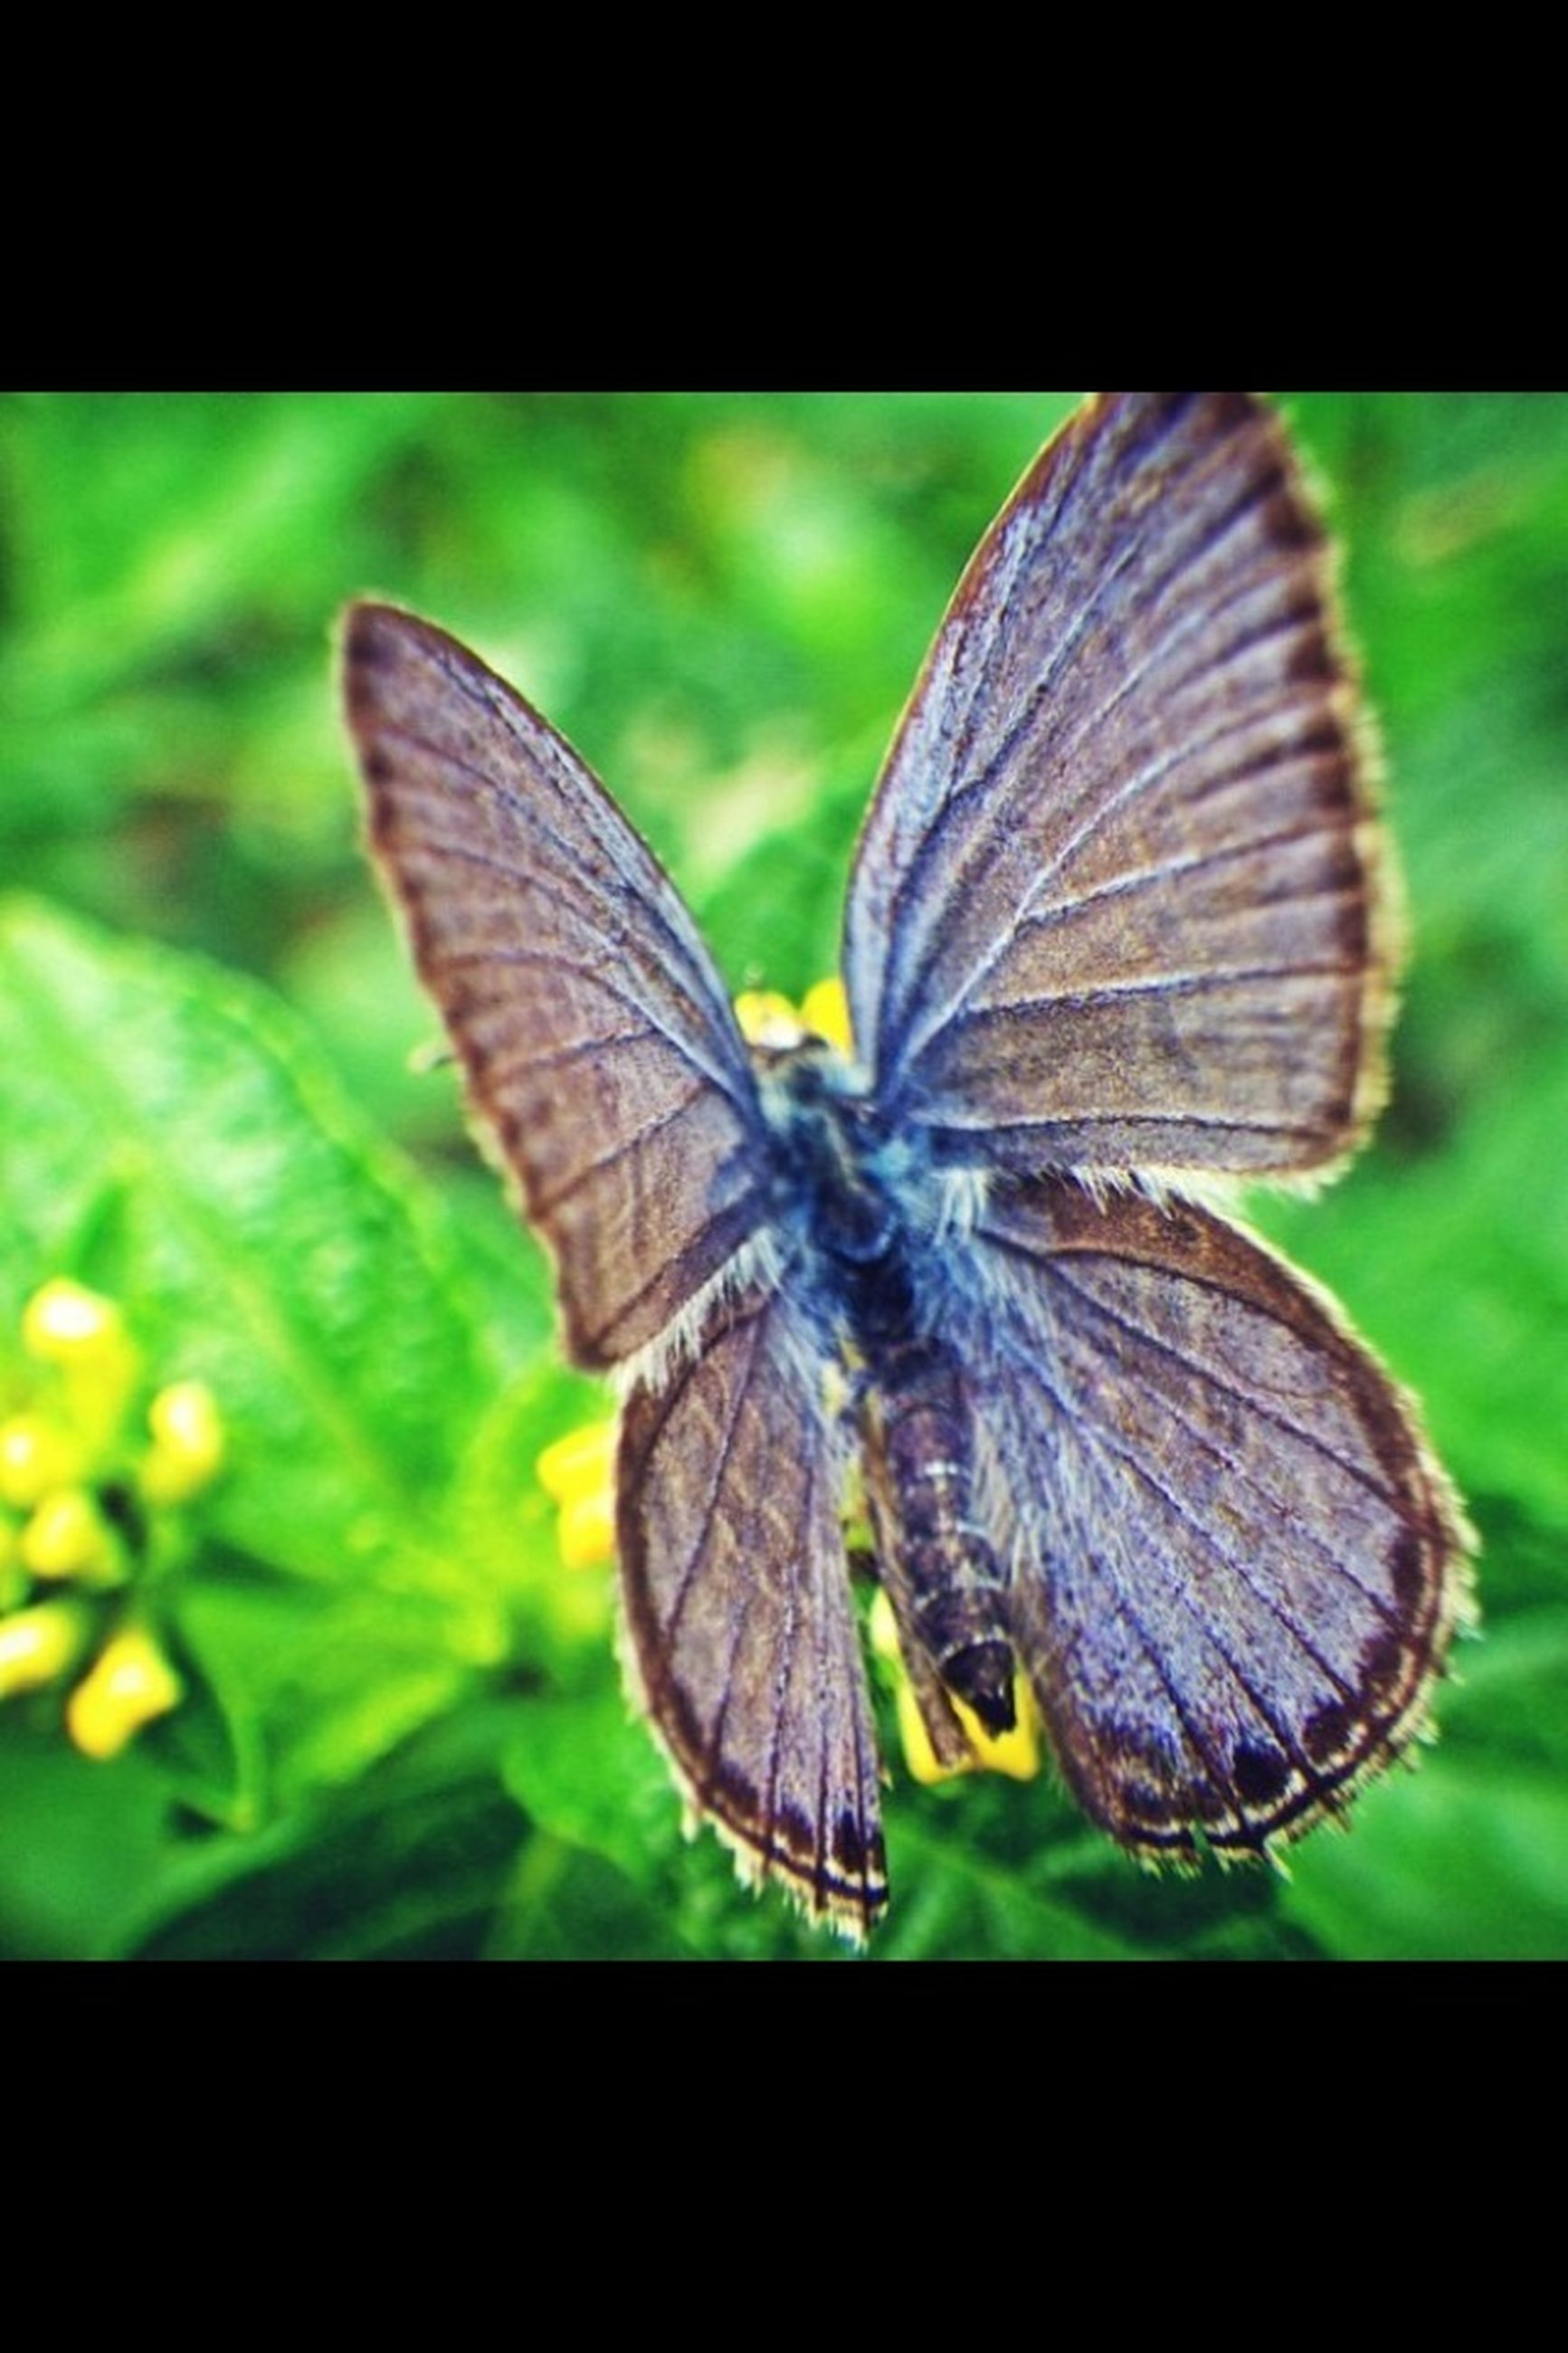 insect, one animal, animal themes, animals in the wild, wildlife, butterfly, transfer print, butterfly - insect, animal wing, close-up, auto post production filter, focus on foreground, full length, nature, leaf, natural pattern, perching, beauty in nature, plant, animal antenna